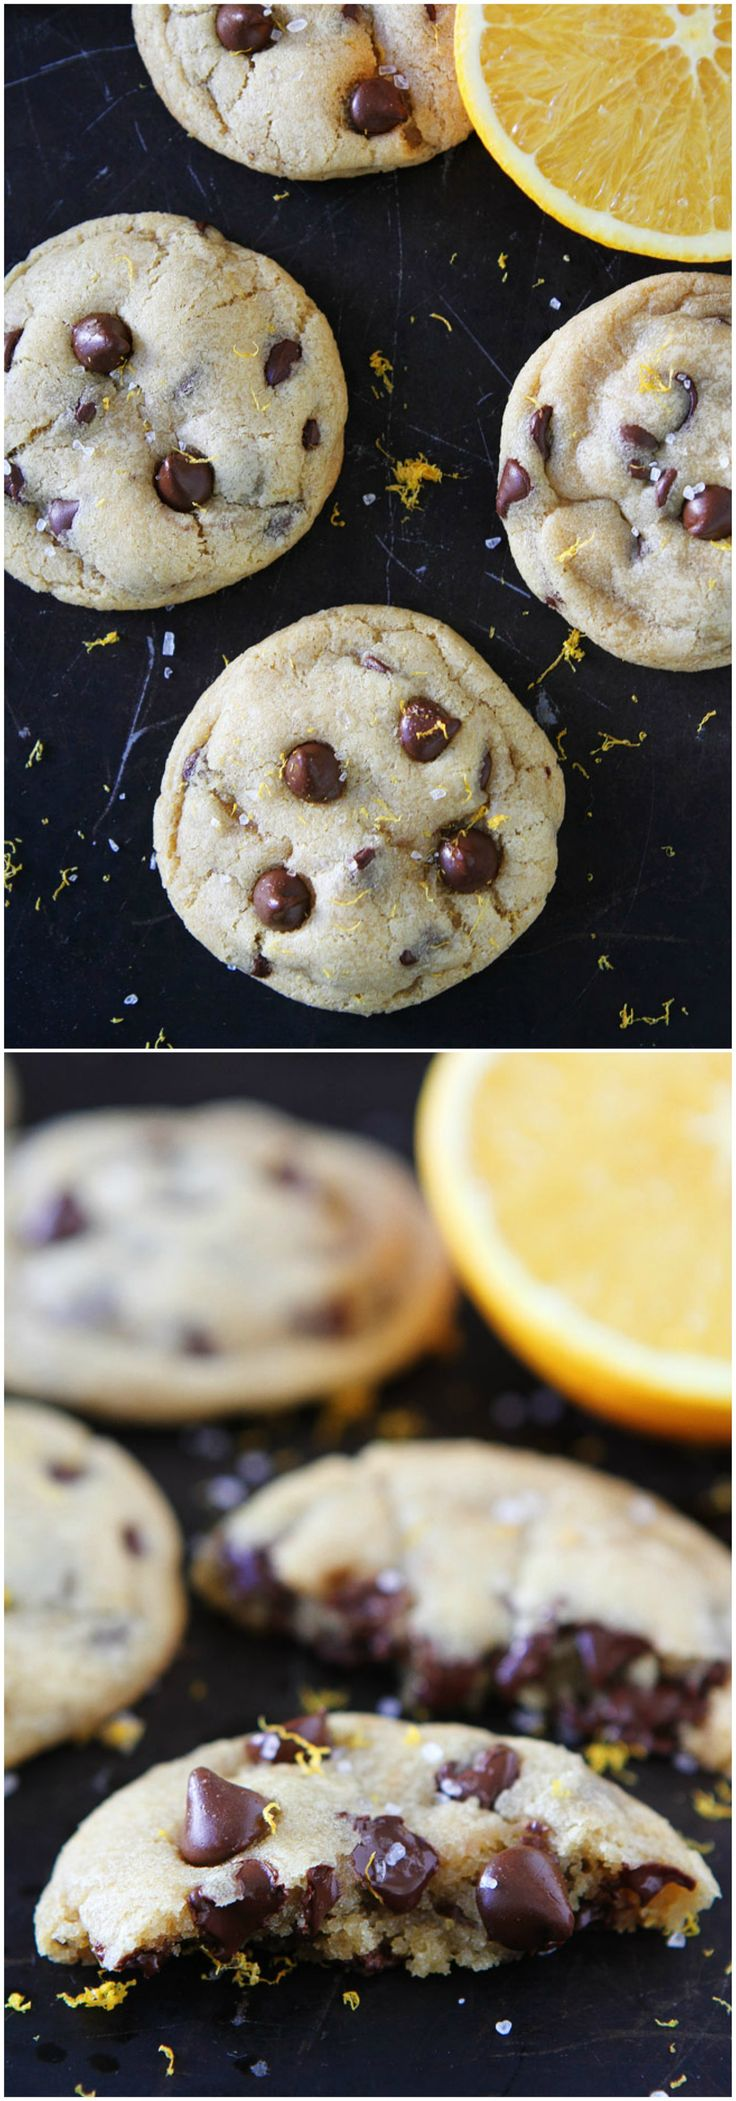 Orange Chocolate Chip Cookies Recipe on twopeasandtheirpo... Soft and chewy chocolate chip cookies with a hint of orange and a sprinkling of sea salt. These cookies are perfection!